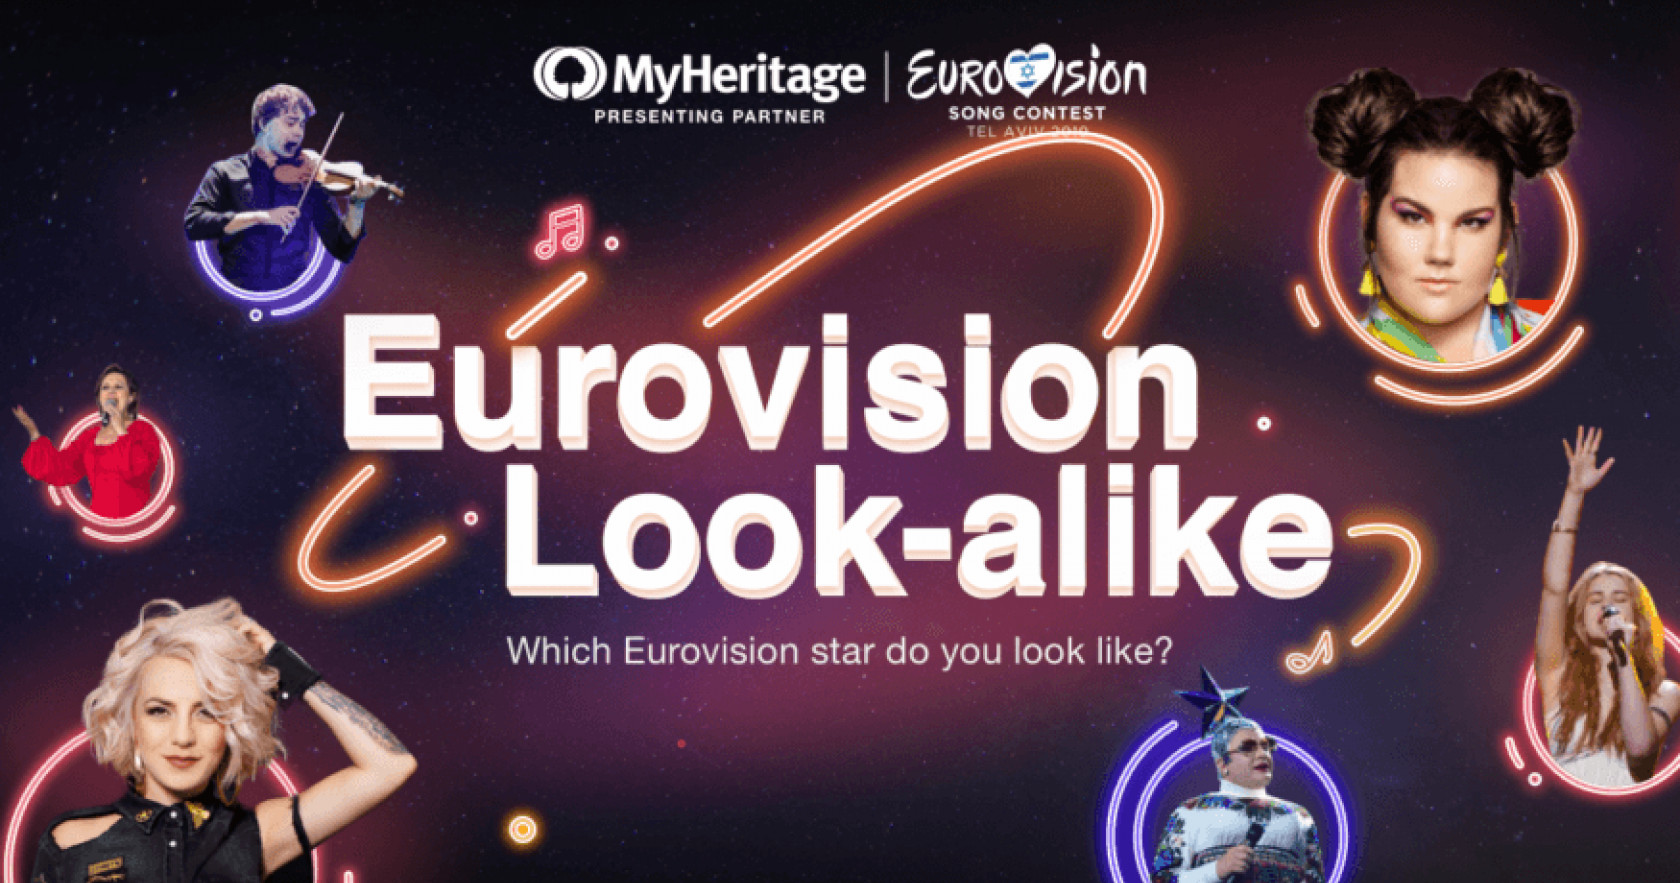 MyHeritage: Eurovision Look-alike